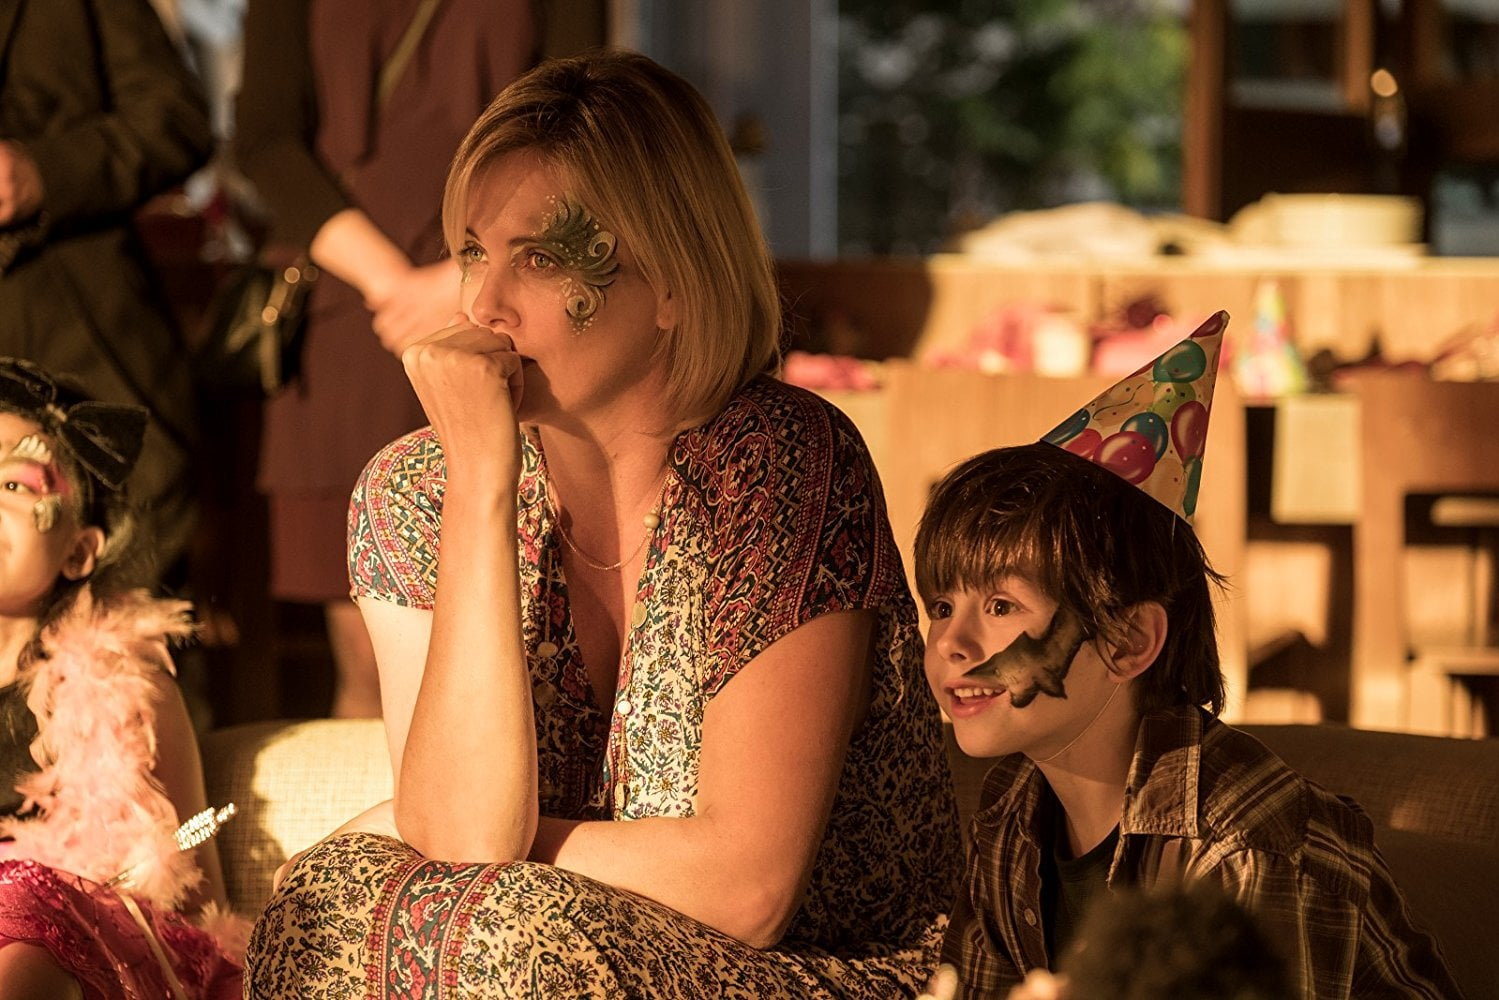 Charlize Theron stars as an overwhelmed mother in the film